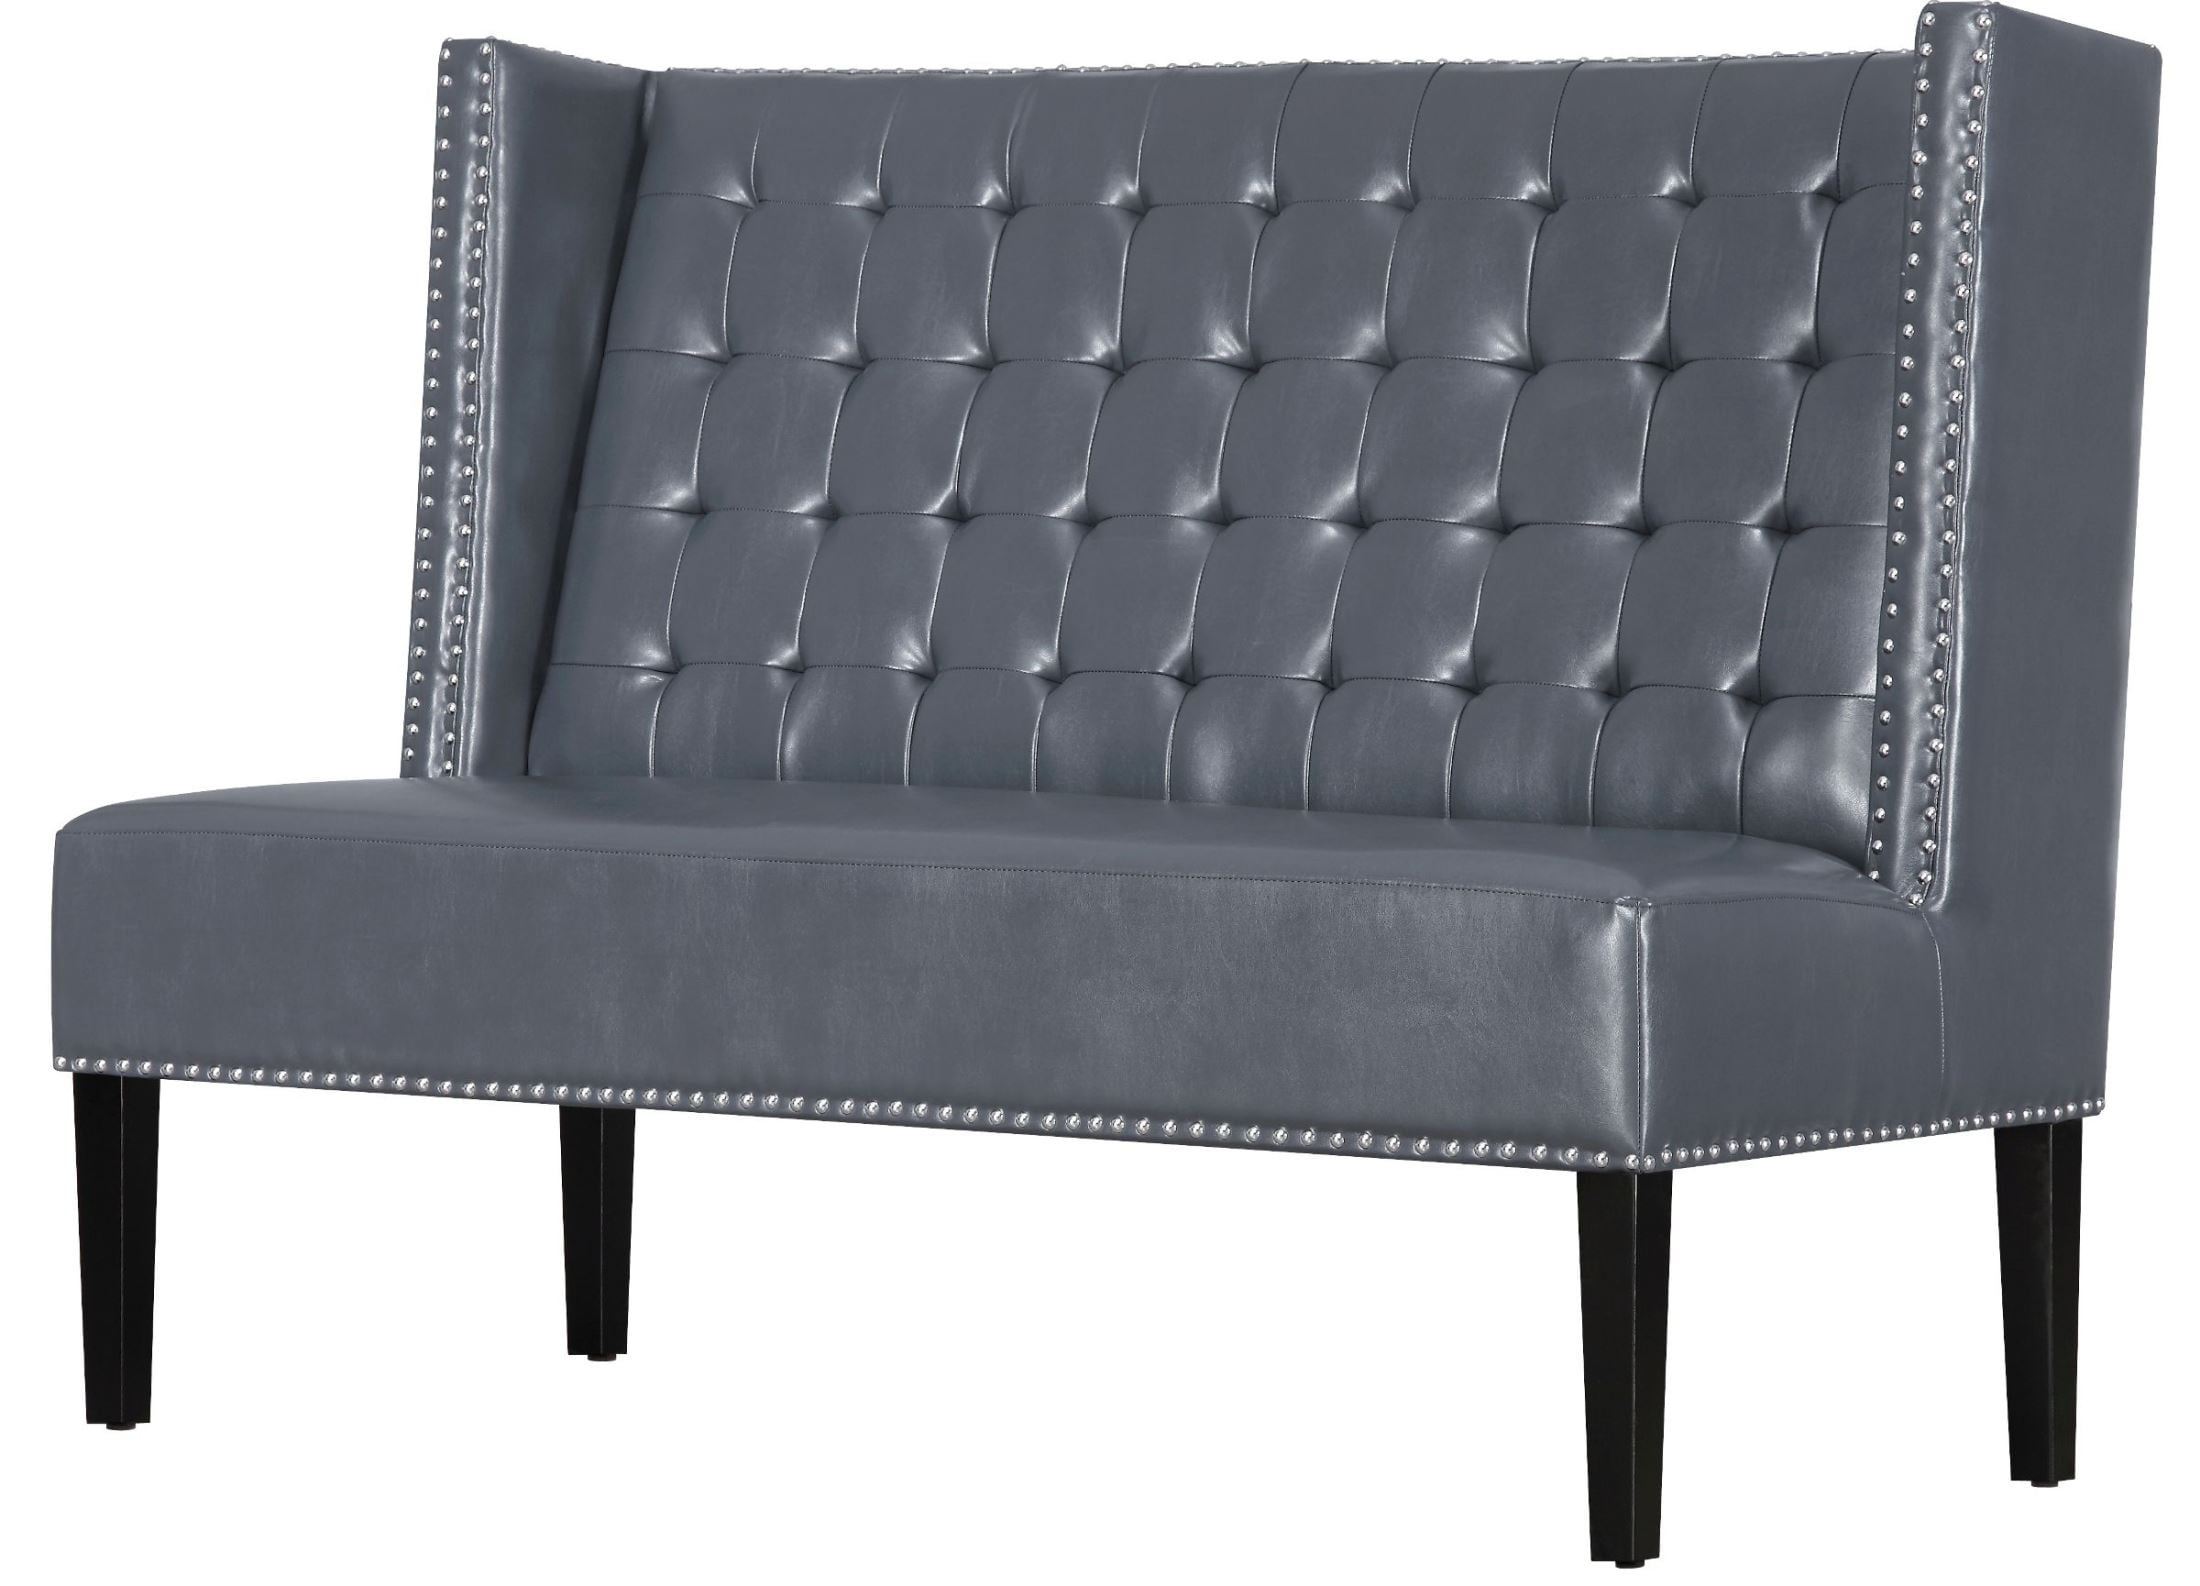 Halifax gray leather banquette bench from tov 63116 gray for Banquette bench